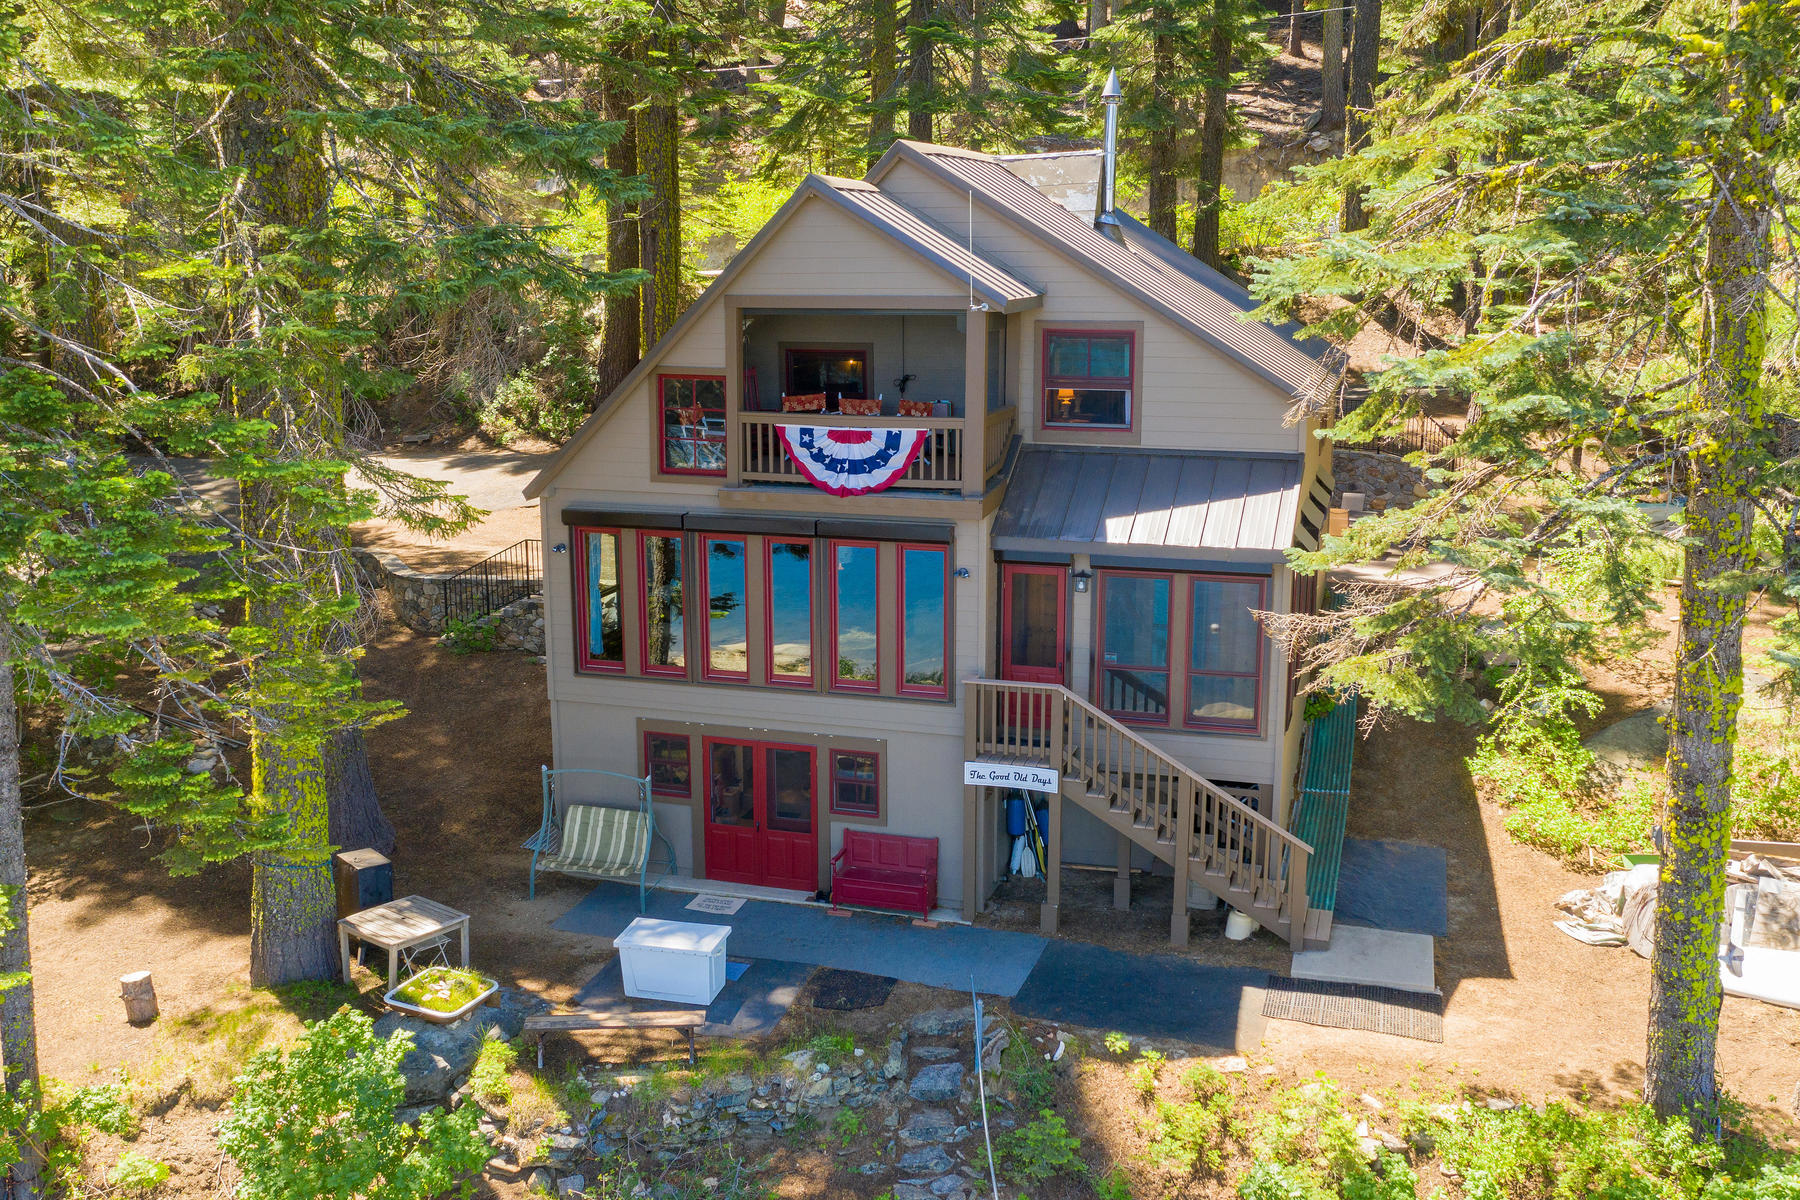 Single Family Homes for Sale at Lake front Bucks Lake Cabin. 16247 Bucks Lake Road Bucks Lake, California 95971 United States